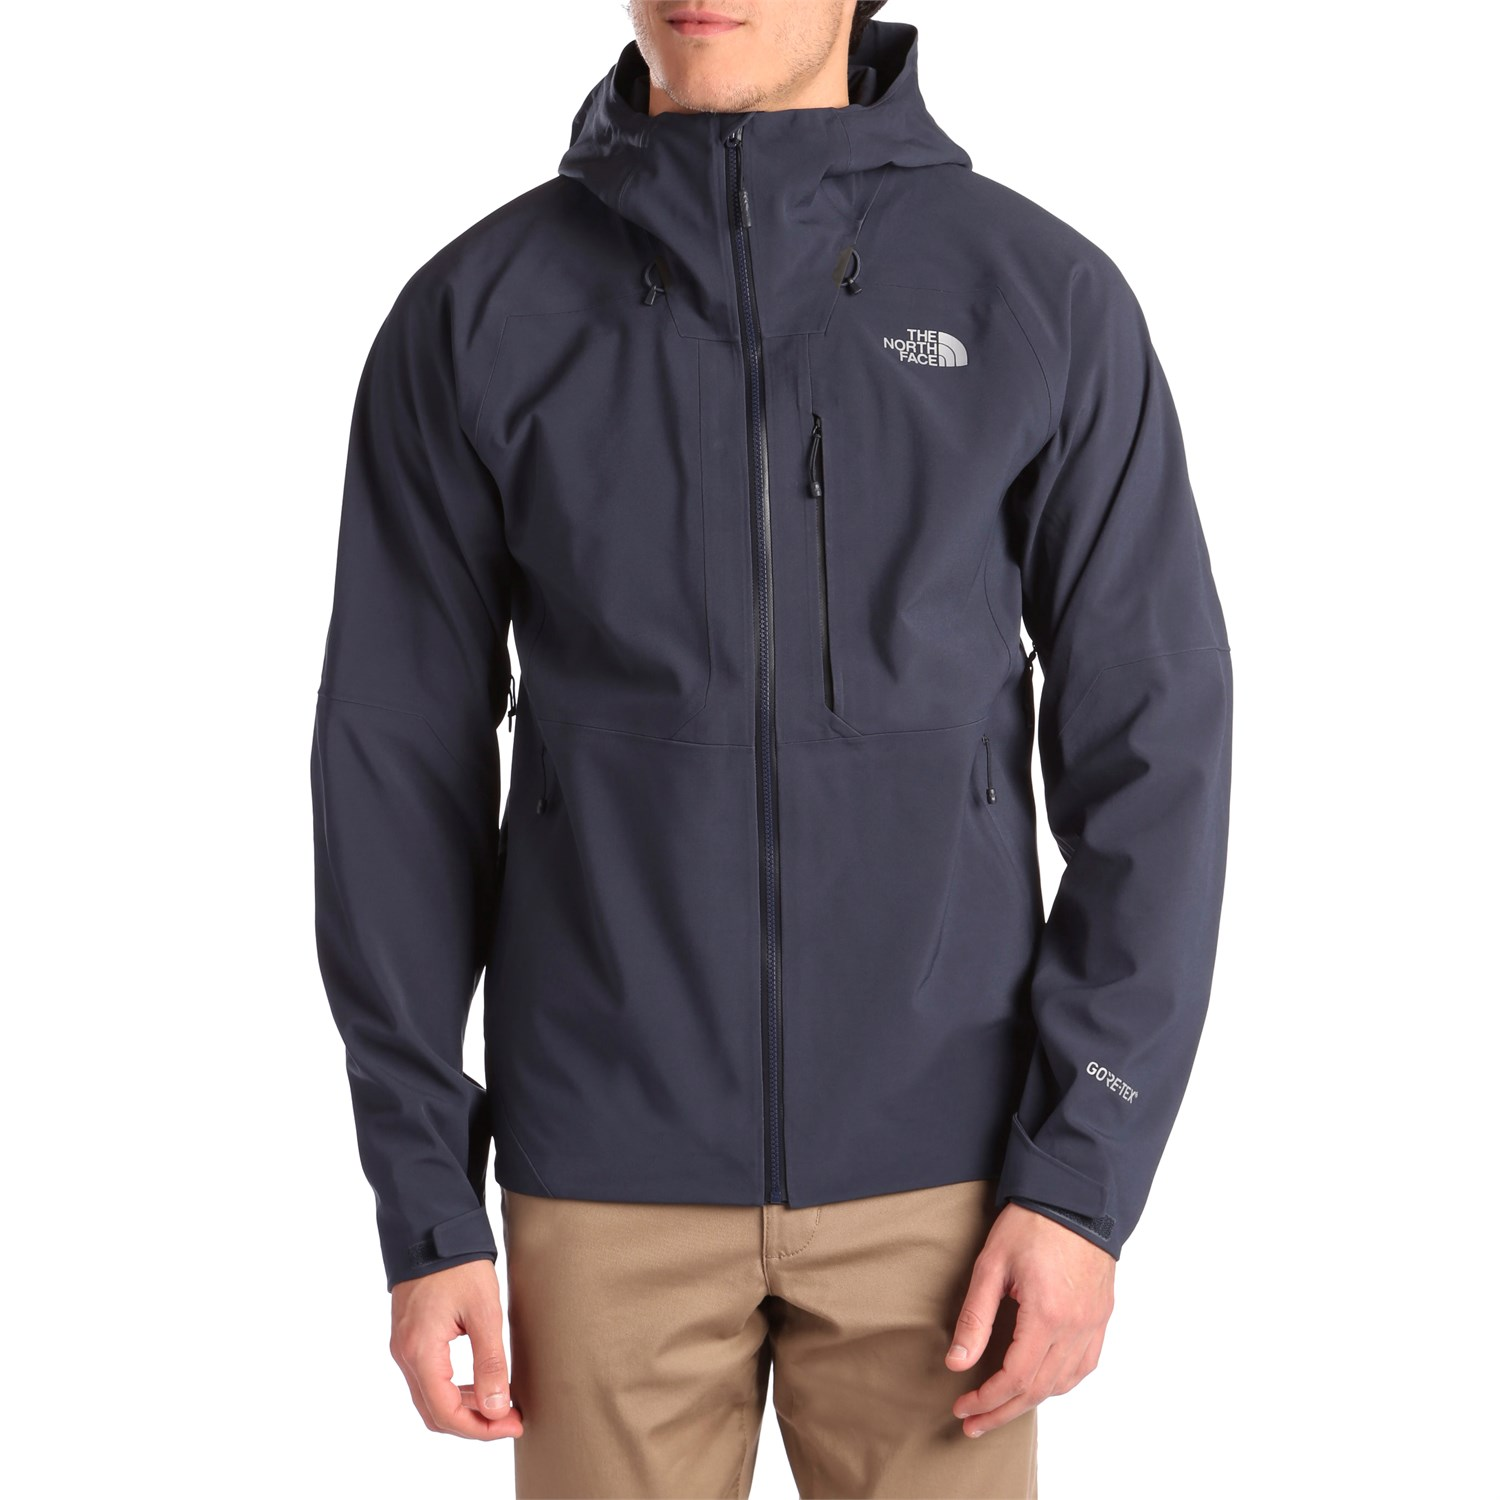 0fd0b1955 The North Face Apex Flex GTX 2.0 Jacket | evo